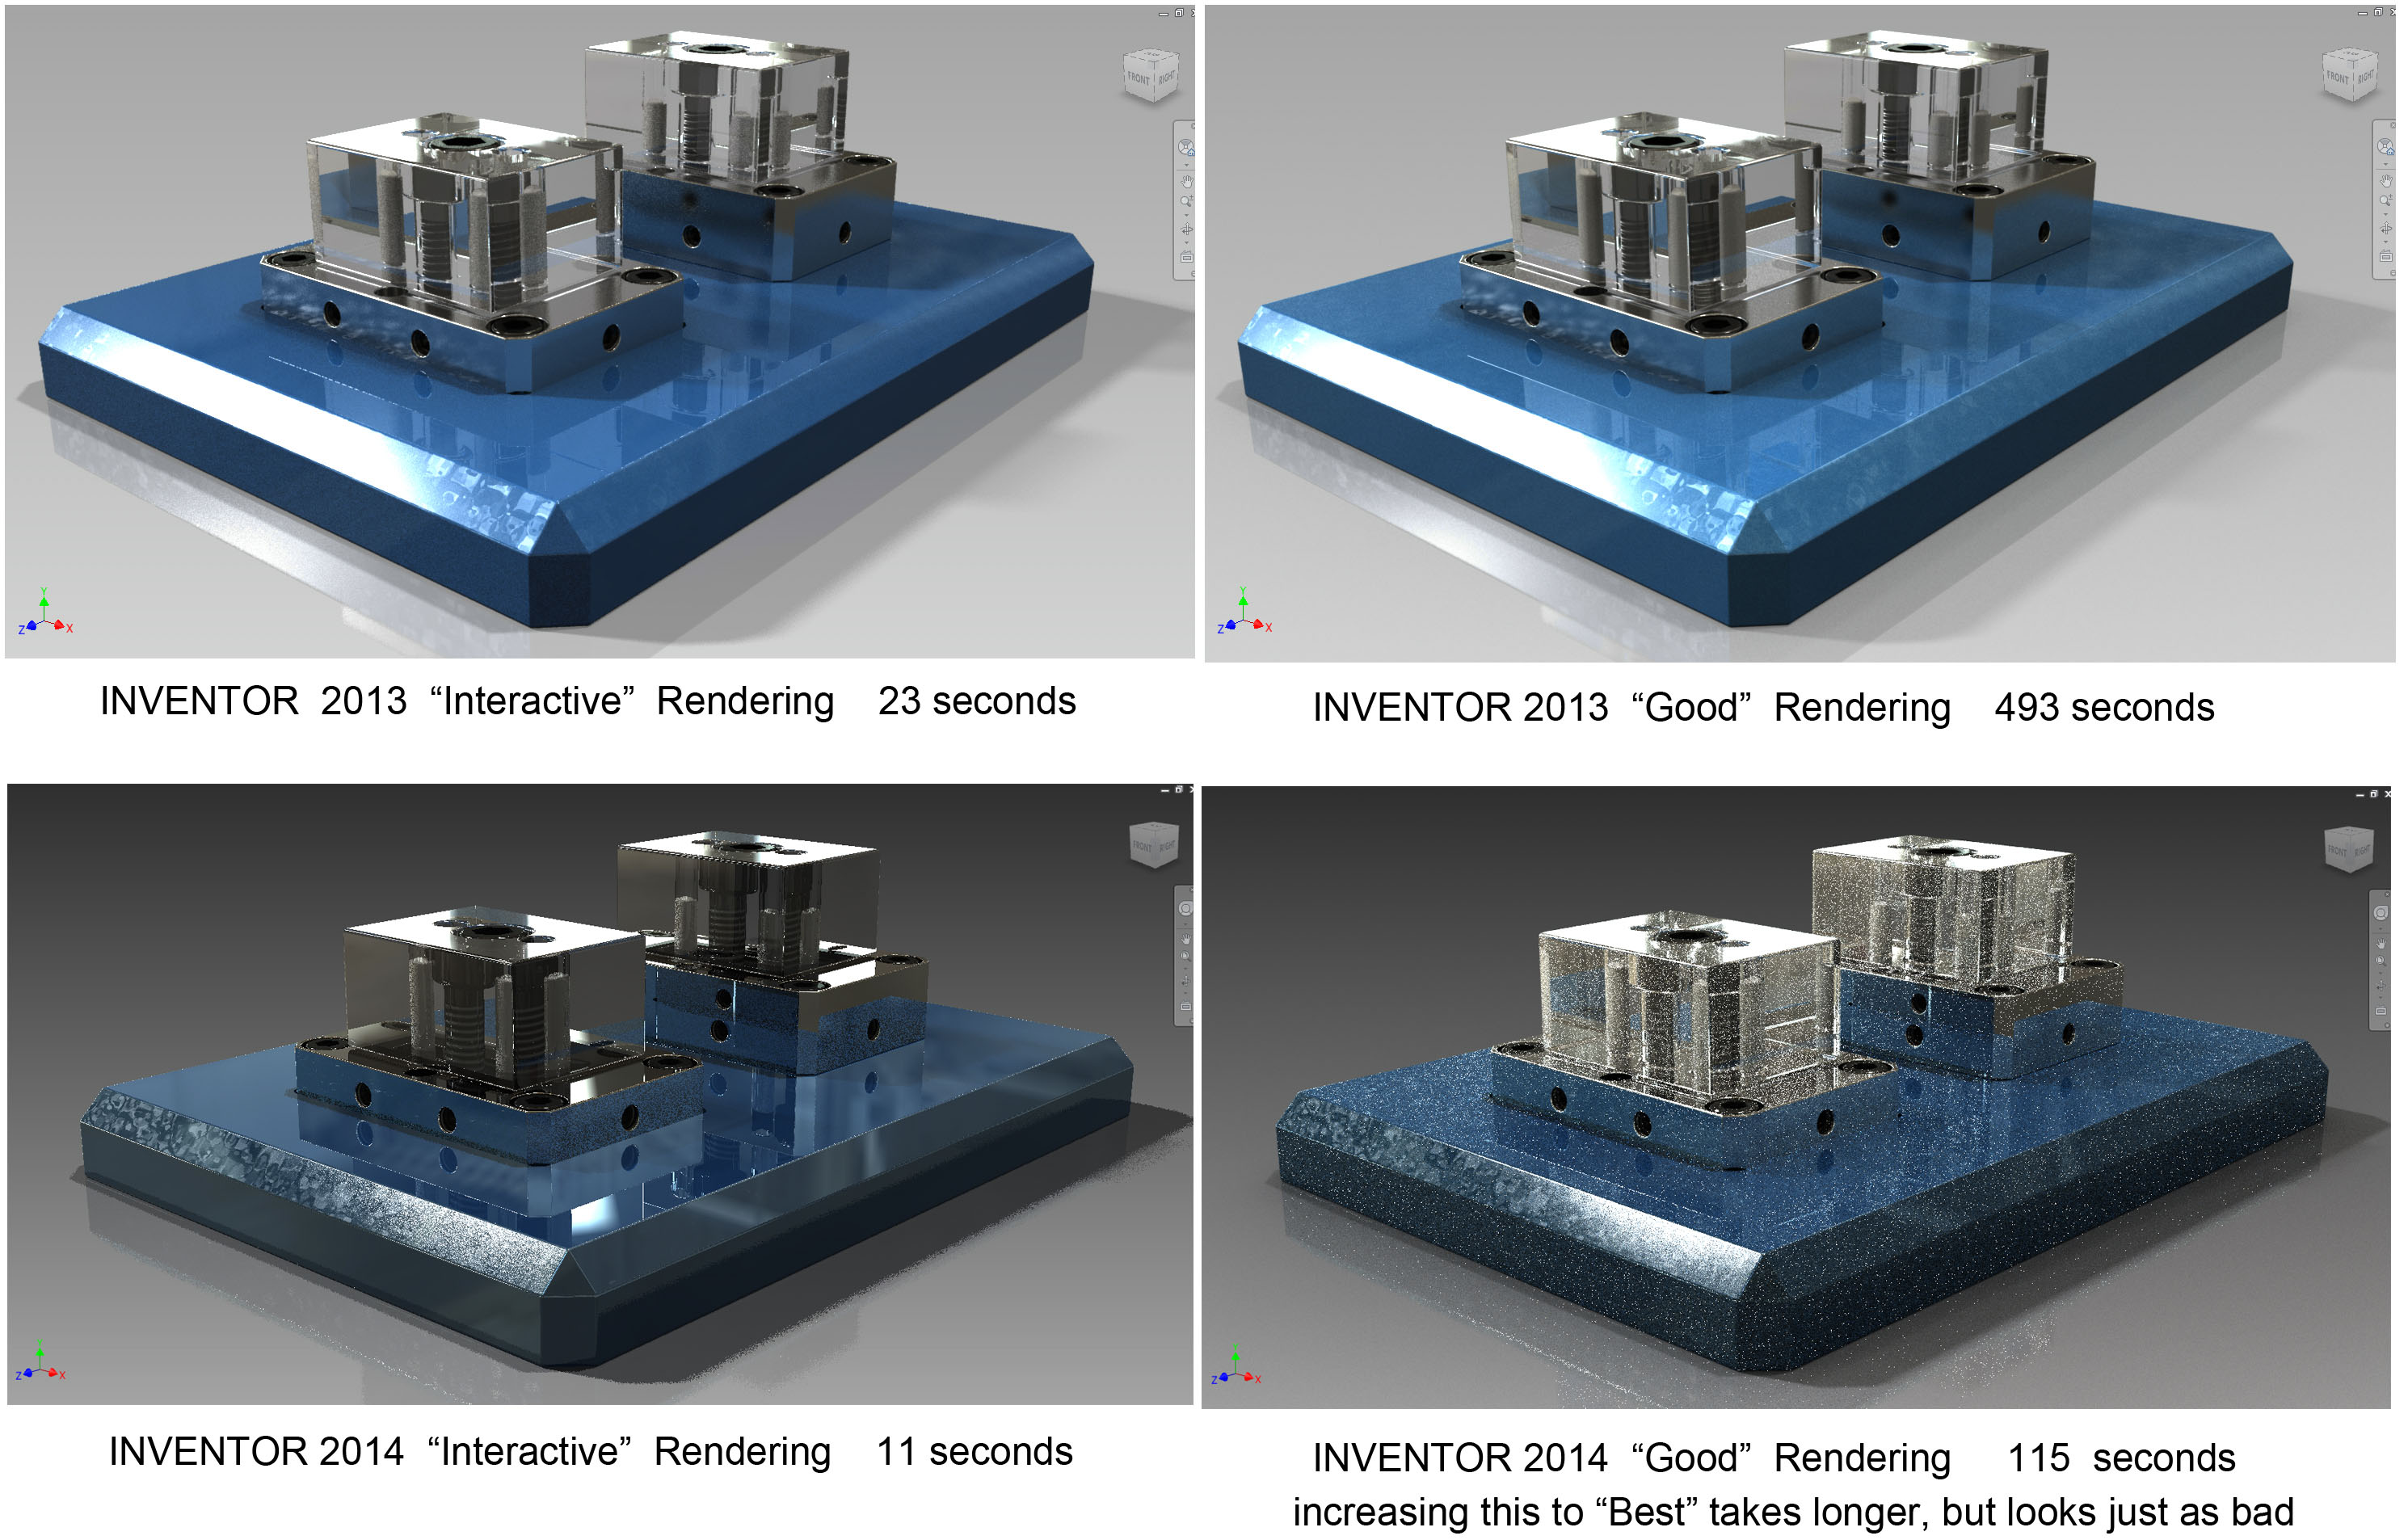 Rendering Images in Inventor Inventor Rendering 2013 vs